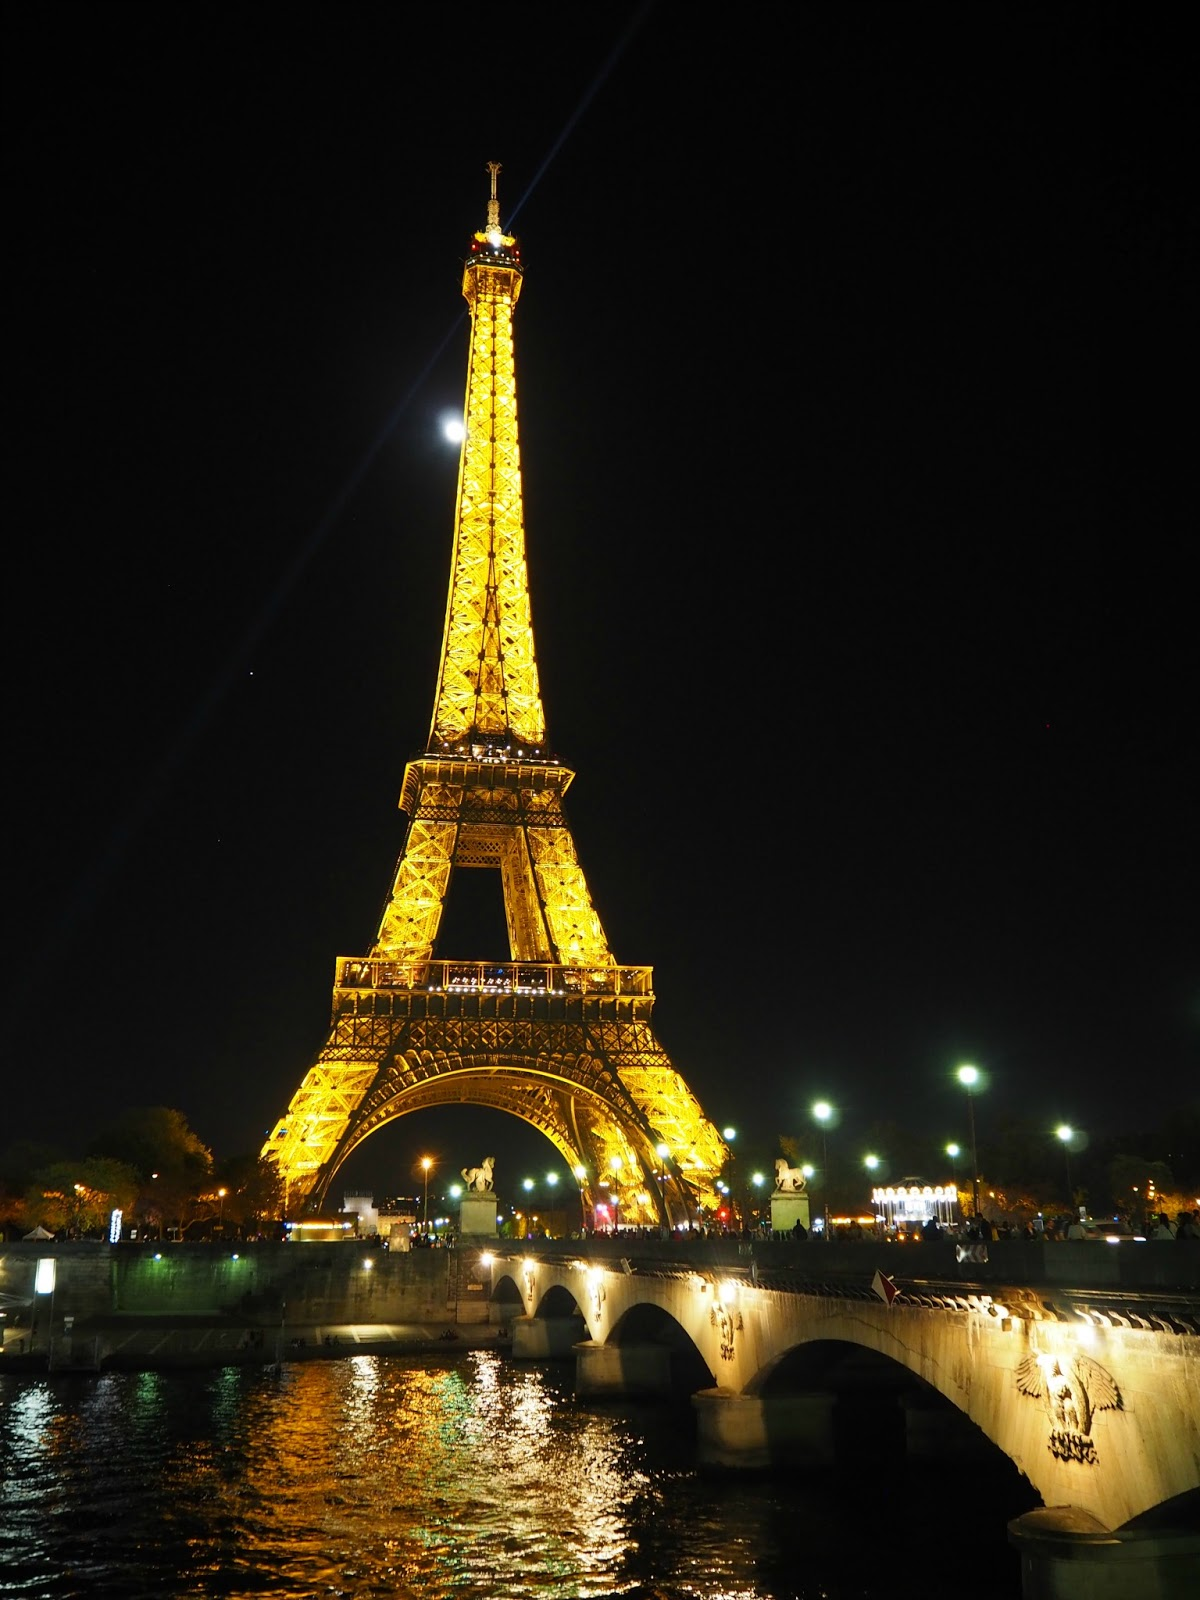 Eiffel Tower at night Paris